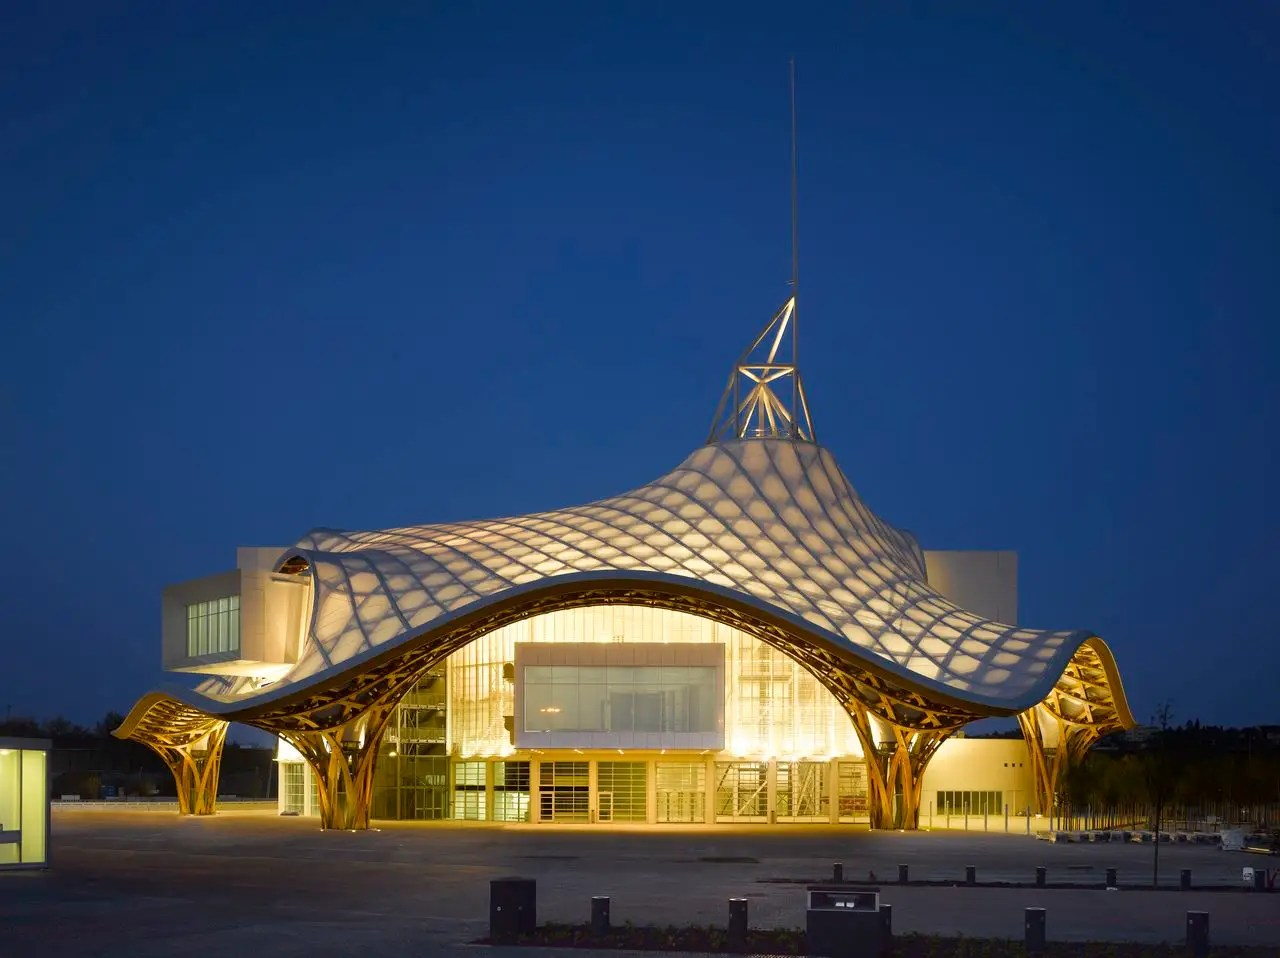 The Centre Pompidou-Metz in Metz, France has a lattice roof inspired by a Chinese bamboo hat.